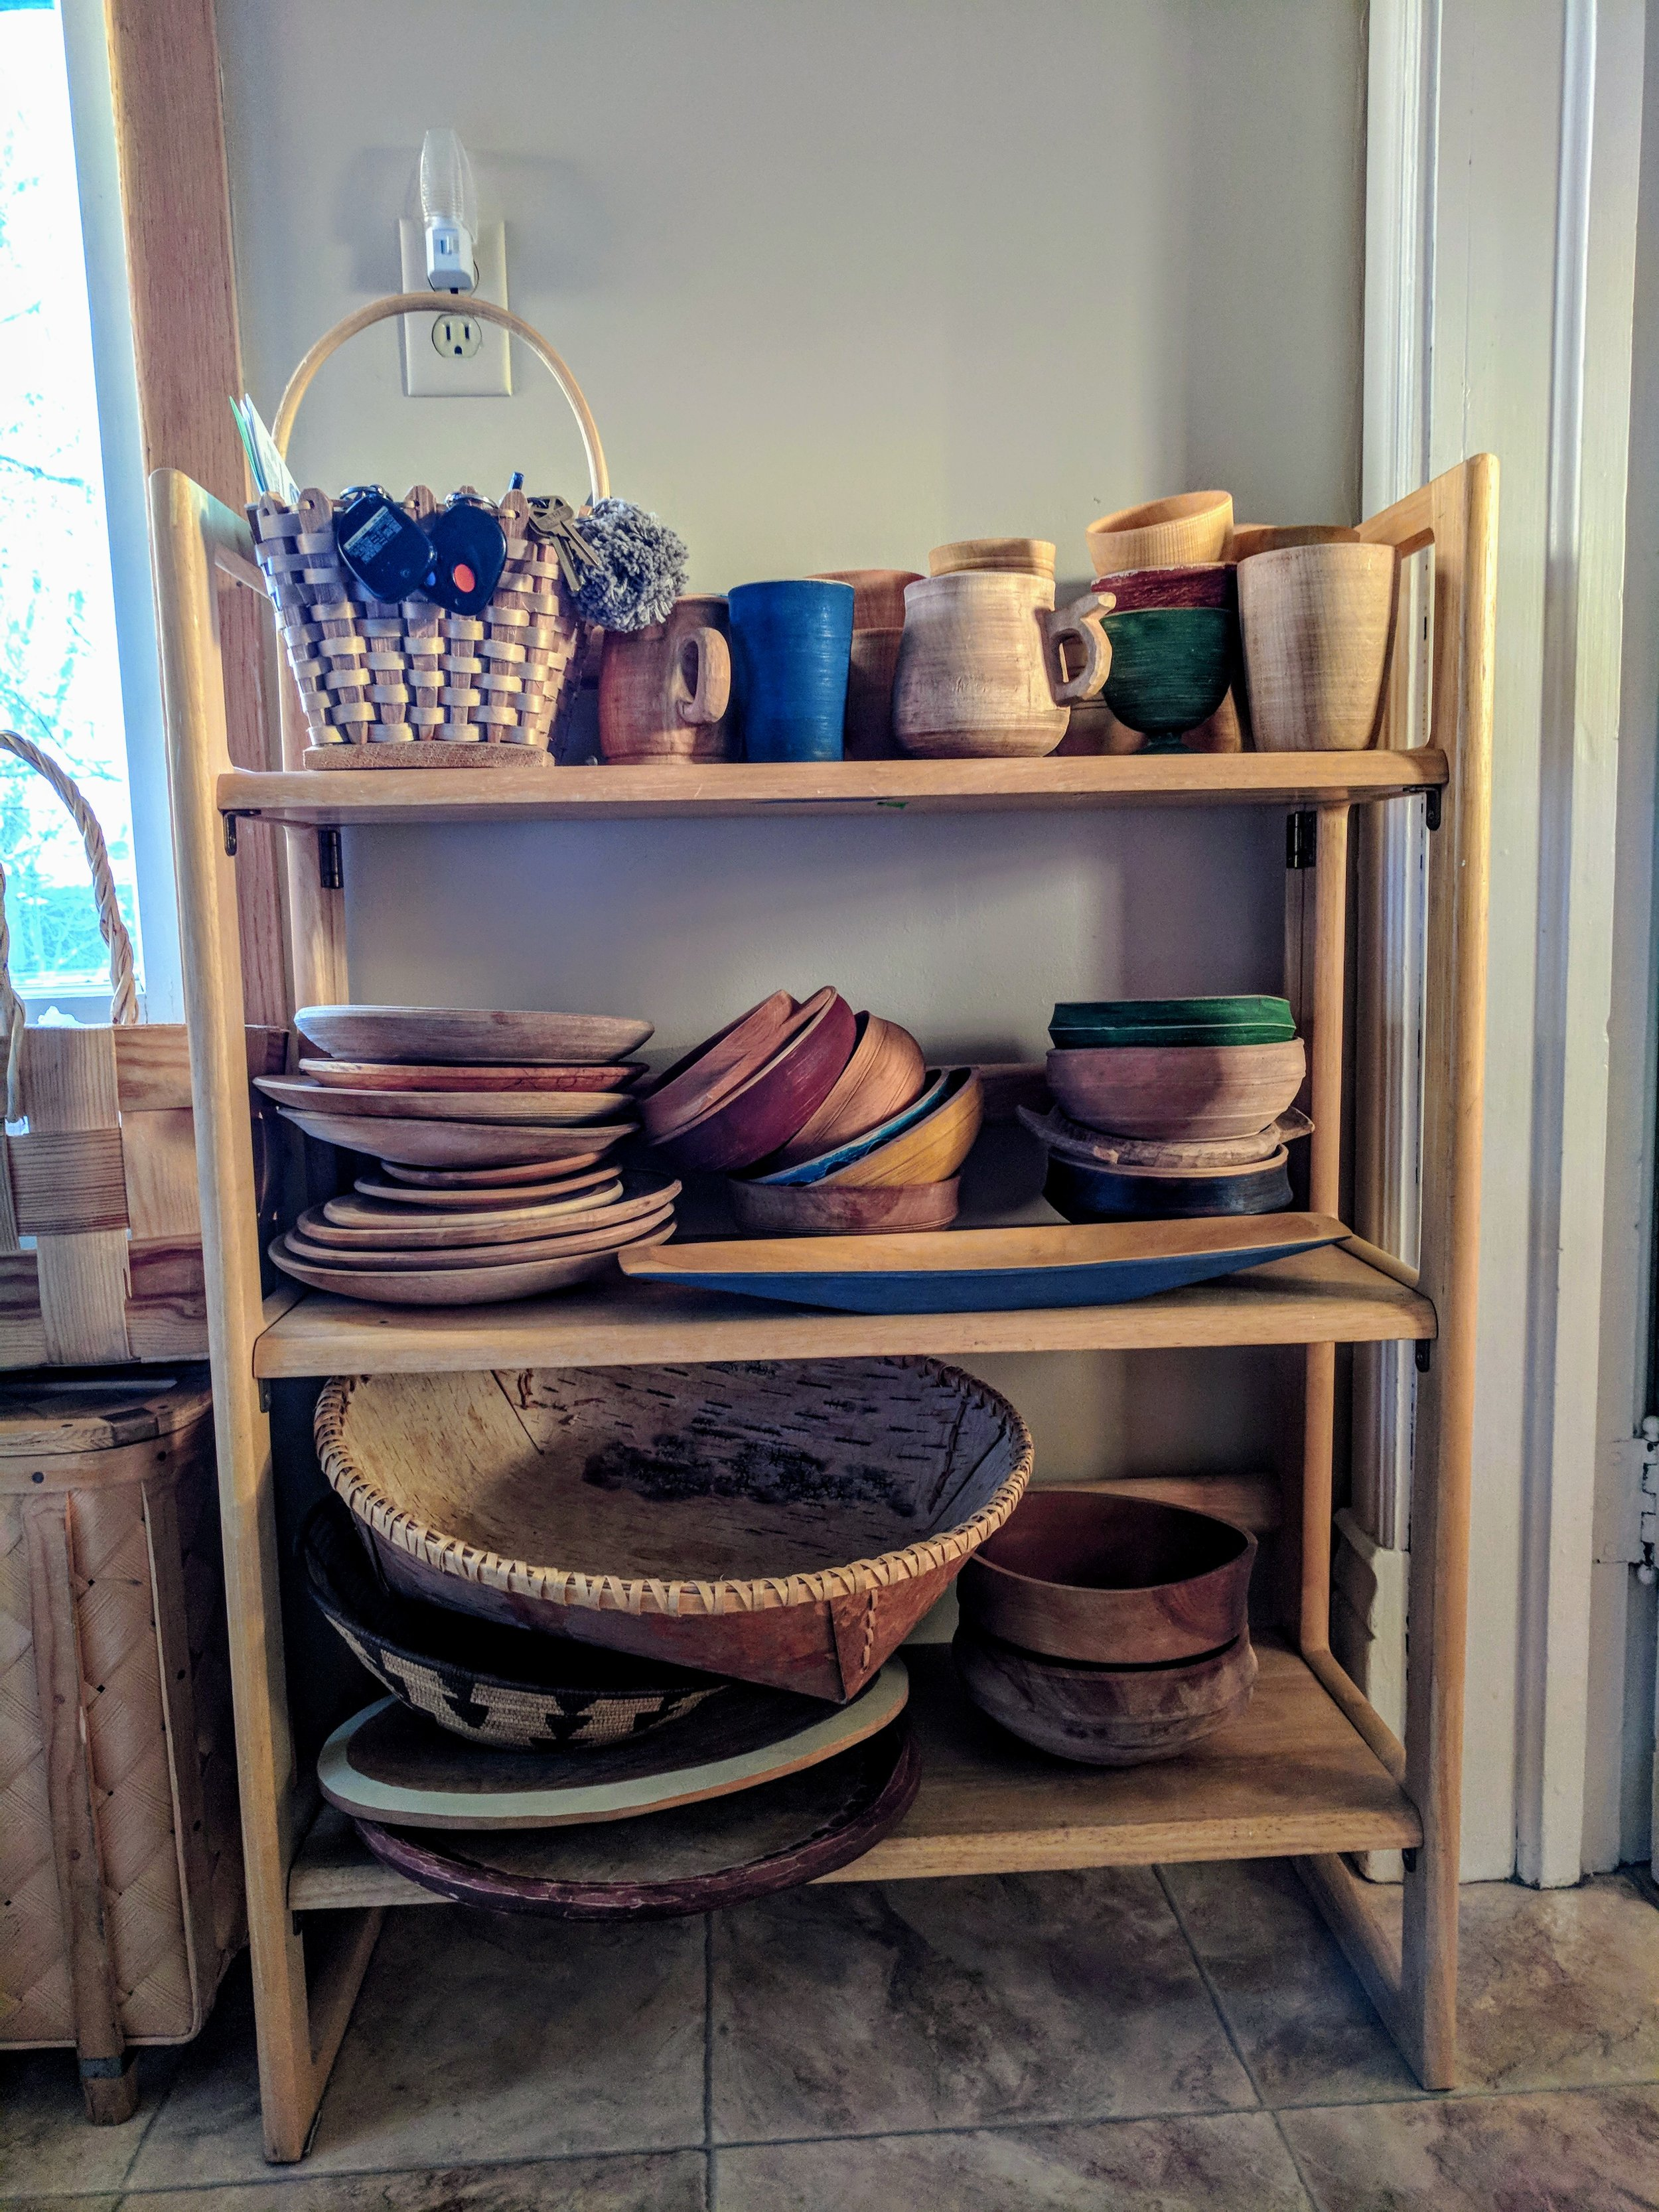 shelves with handmade wooden bowls plates and cups